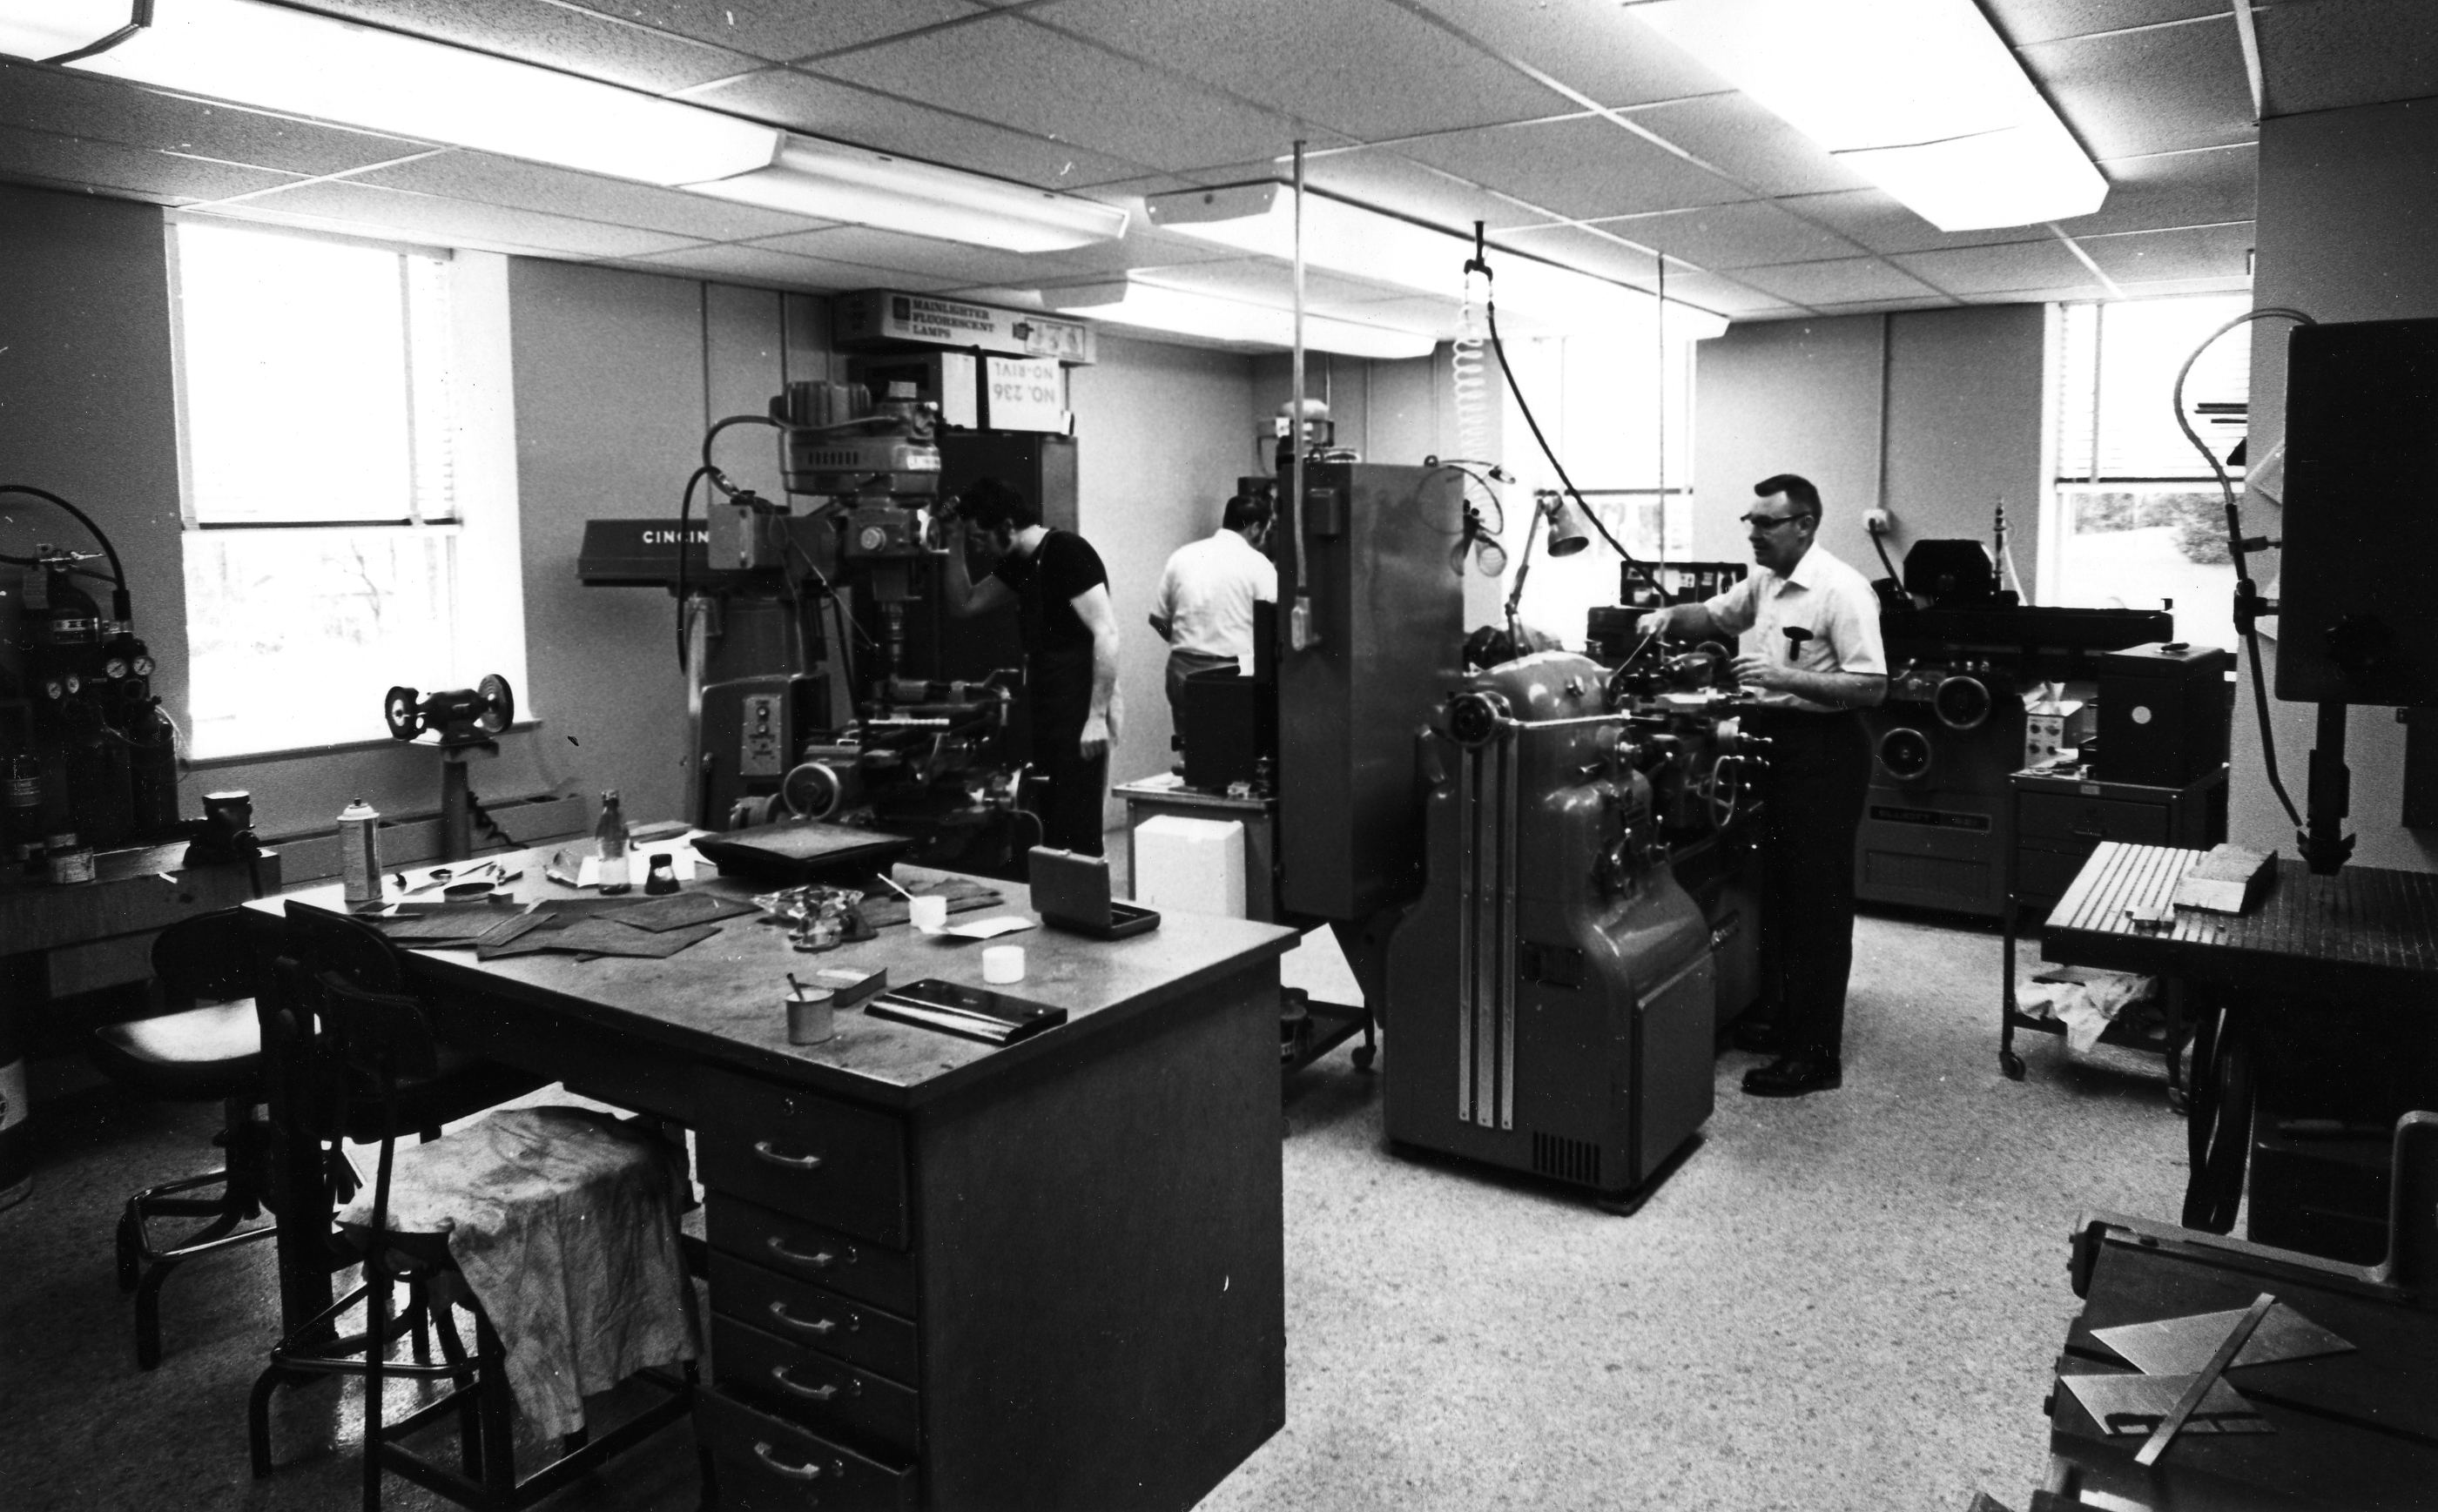 Machine Shop, 1980